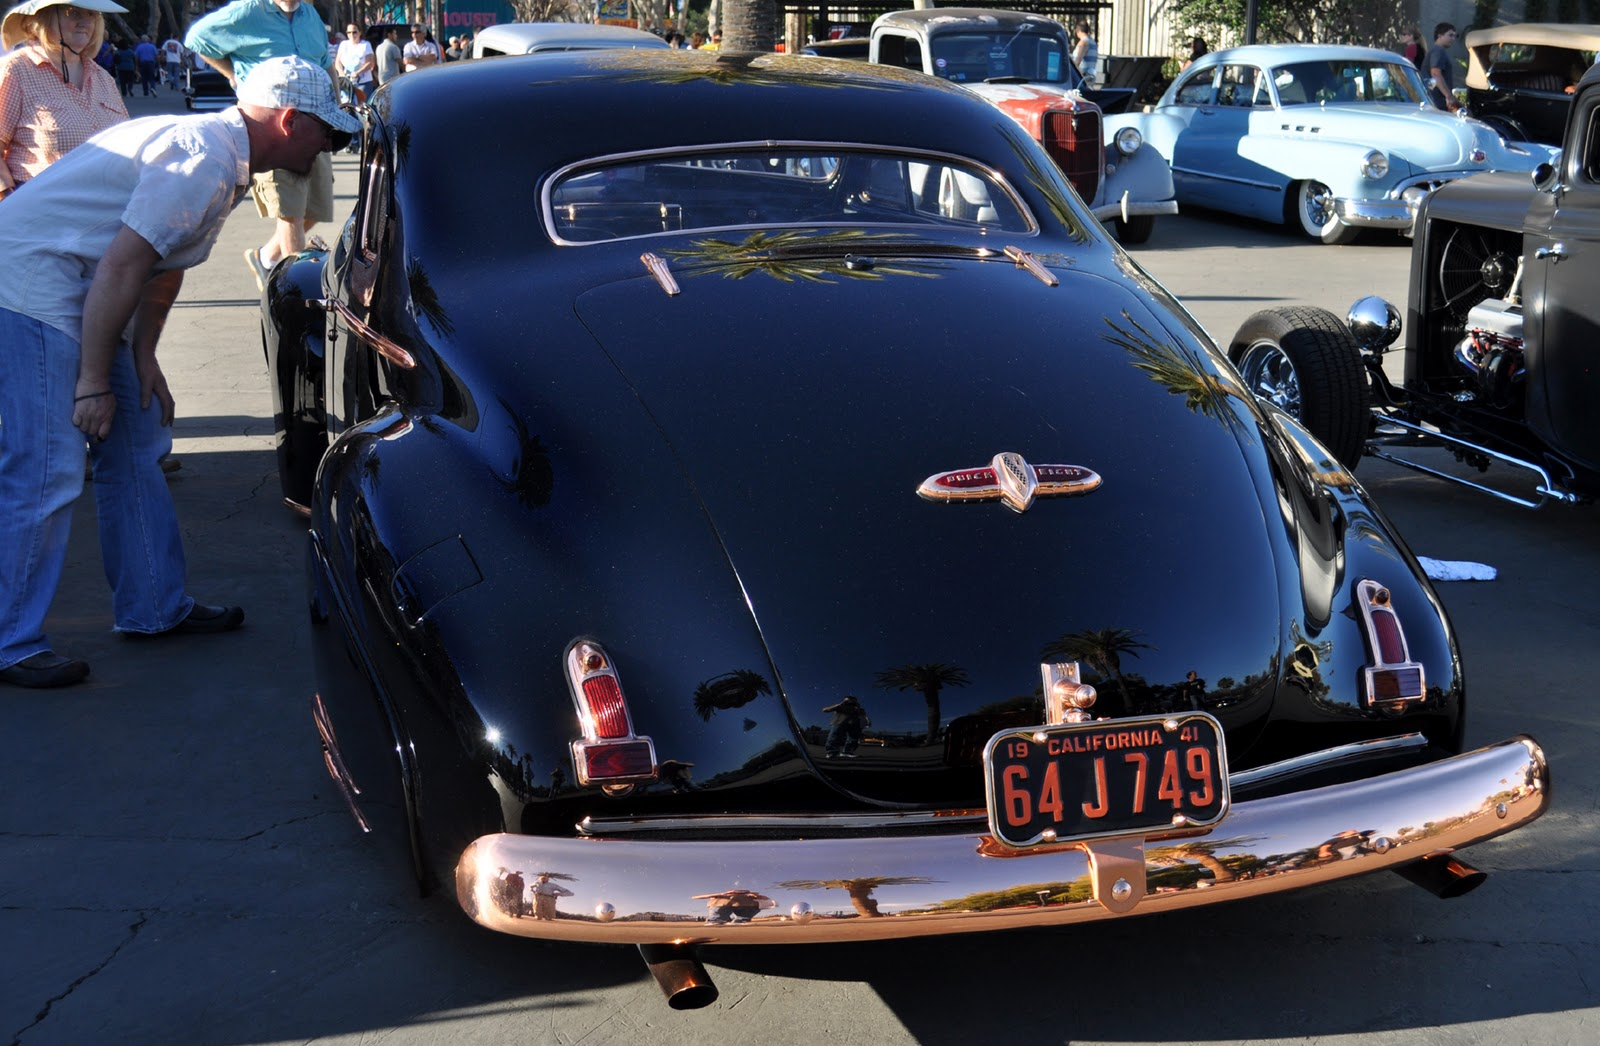 Here is the link to the gallery from last fall s la autorama http justacarguy blogspot com 2011 10 some copper trim on this buick makes it html